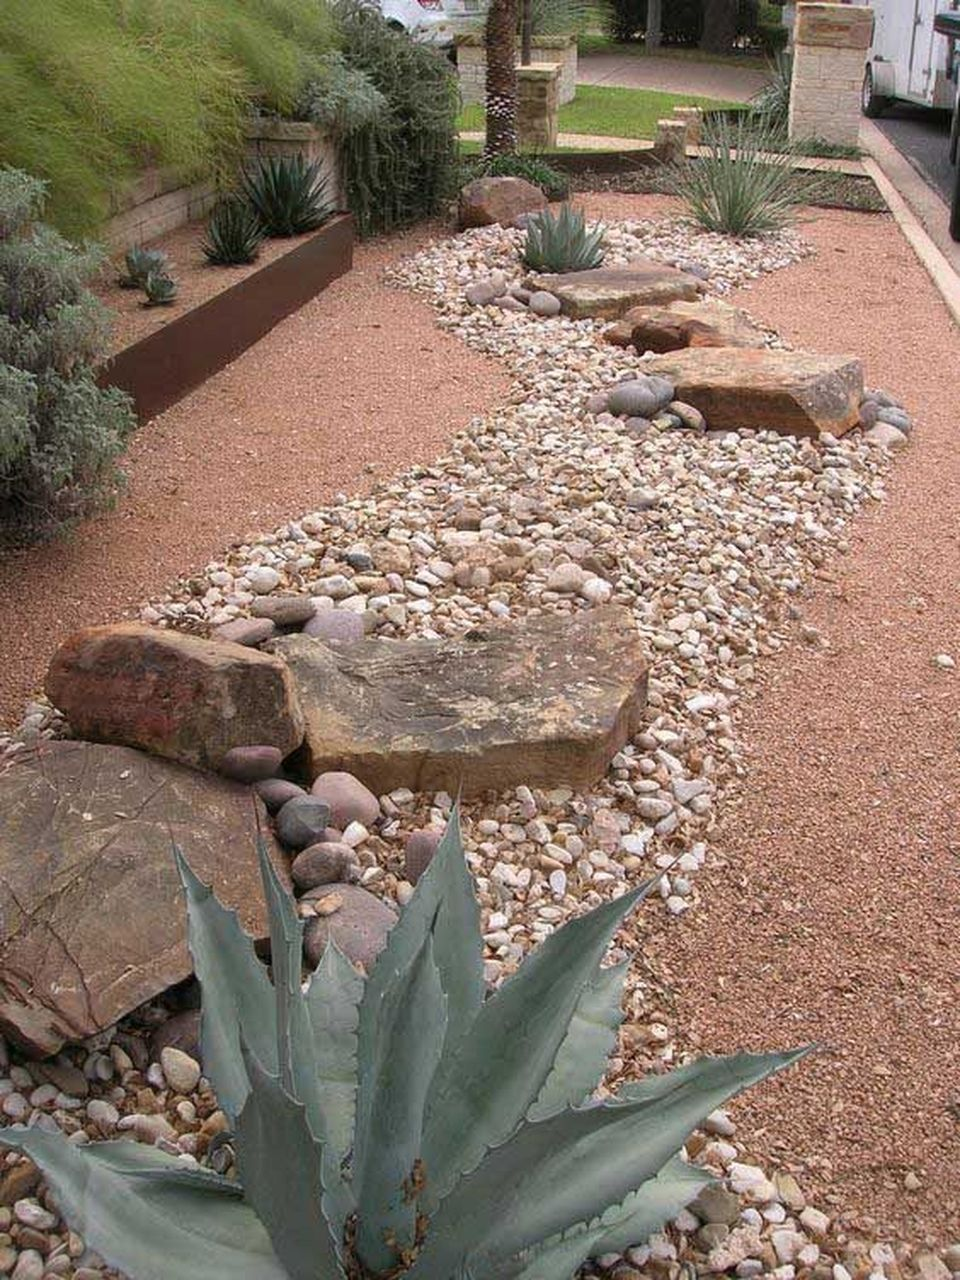 This is stunning desert garden ideas for home yard 10 image you can read and see another amazing image ideas on 60 stunning desert garden landscaping ideas